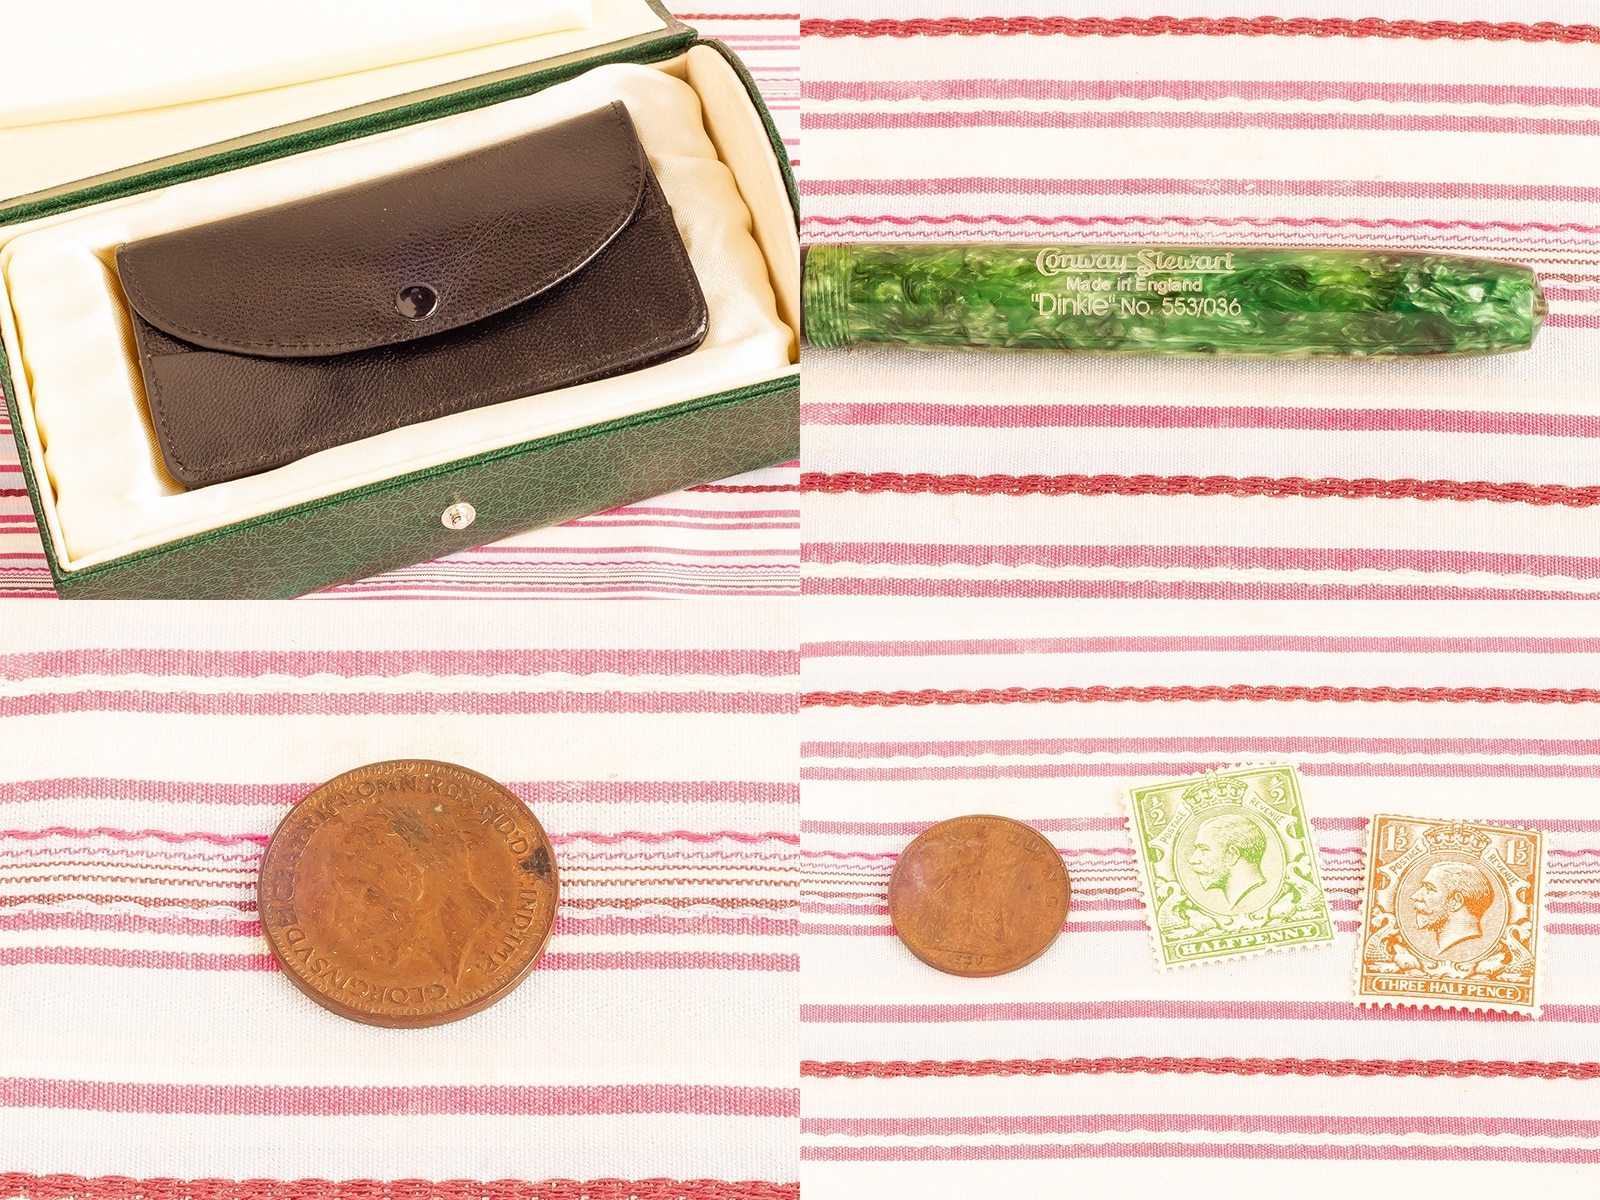 modern vintage conway stewart dinkie forest green 18kt gold filled leather pouch KGV king george V coins stamps fountain pen gift box set